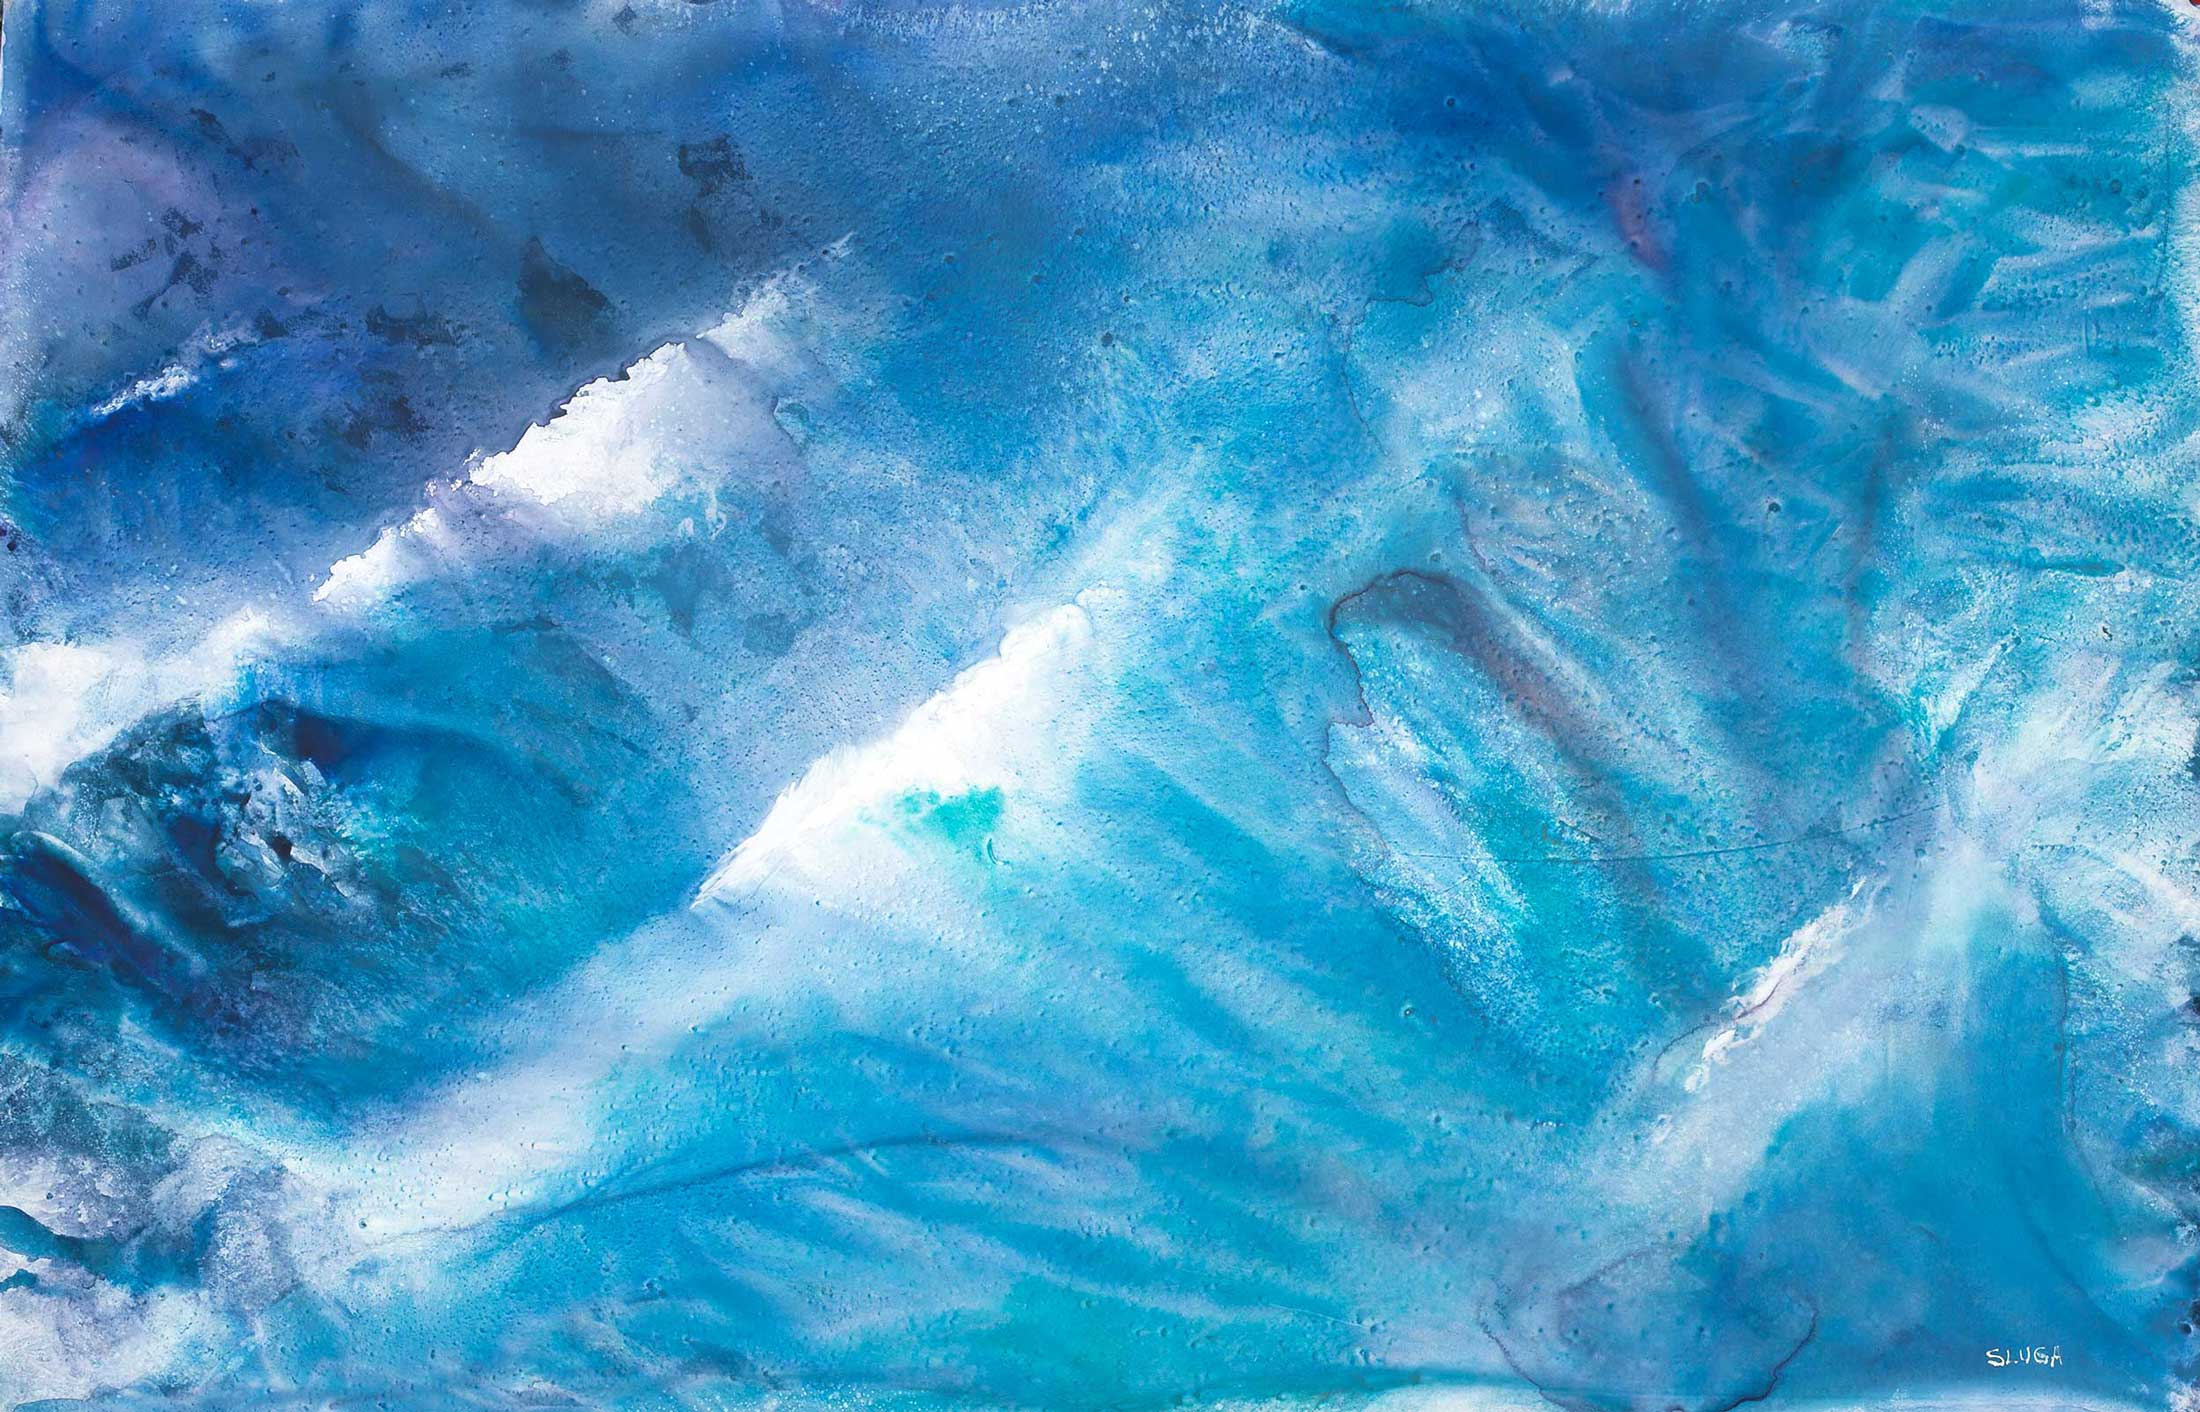 The Awesome Wave 101 x 65 cm (This painting is framed)